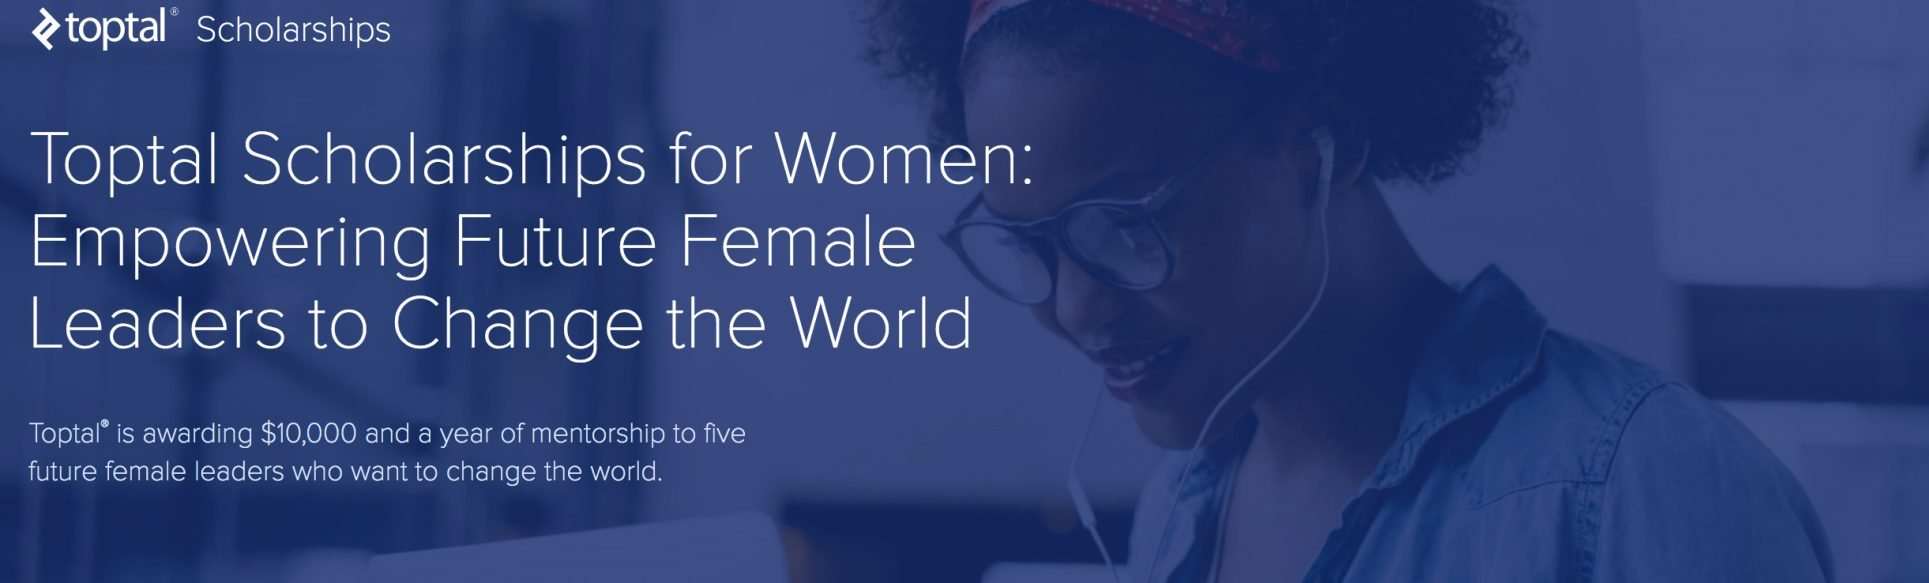 Toptal Scholarships for Women